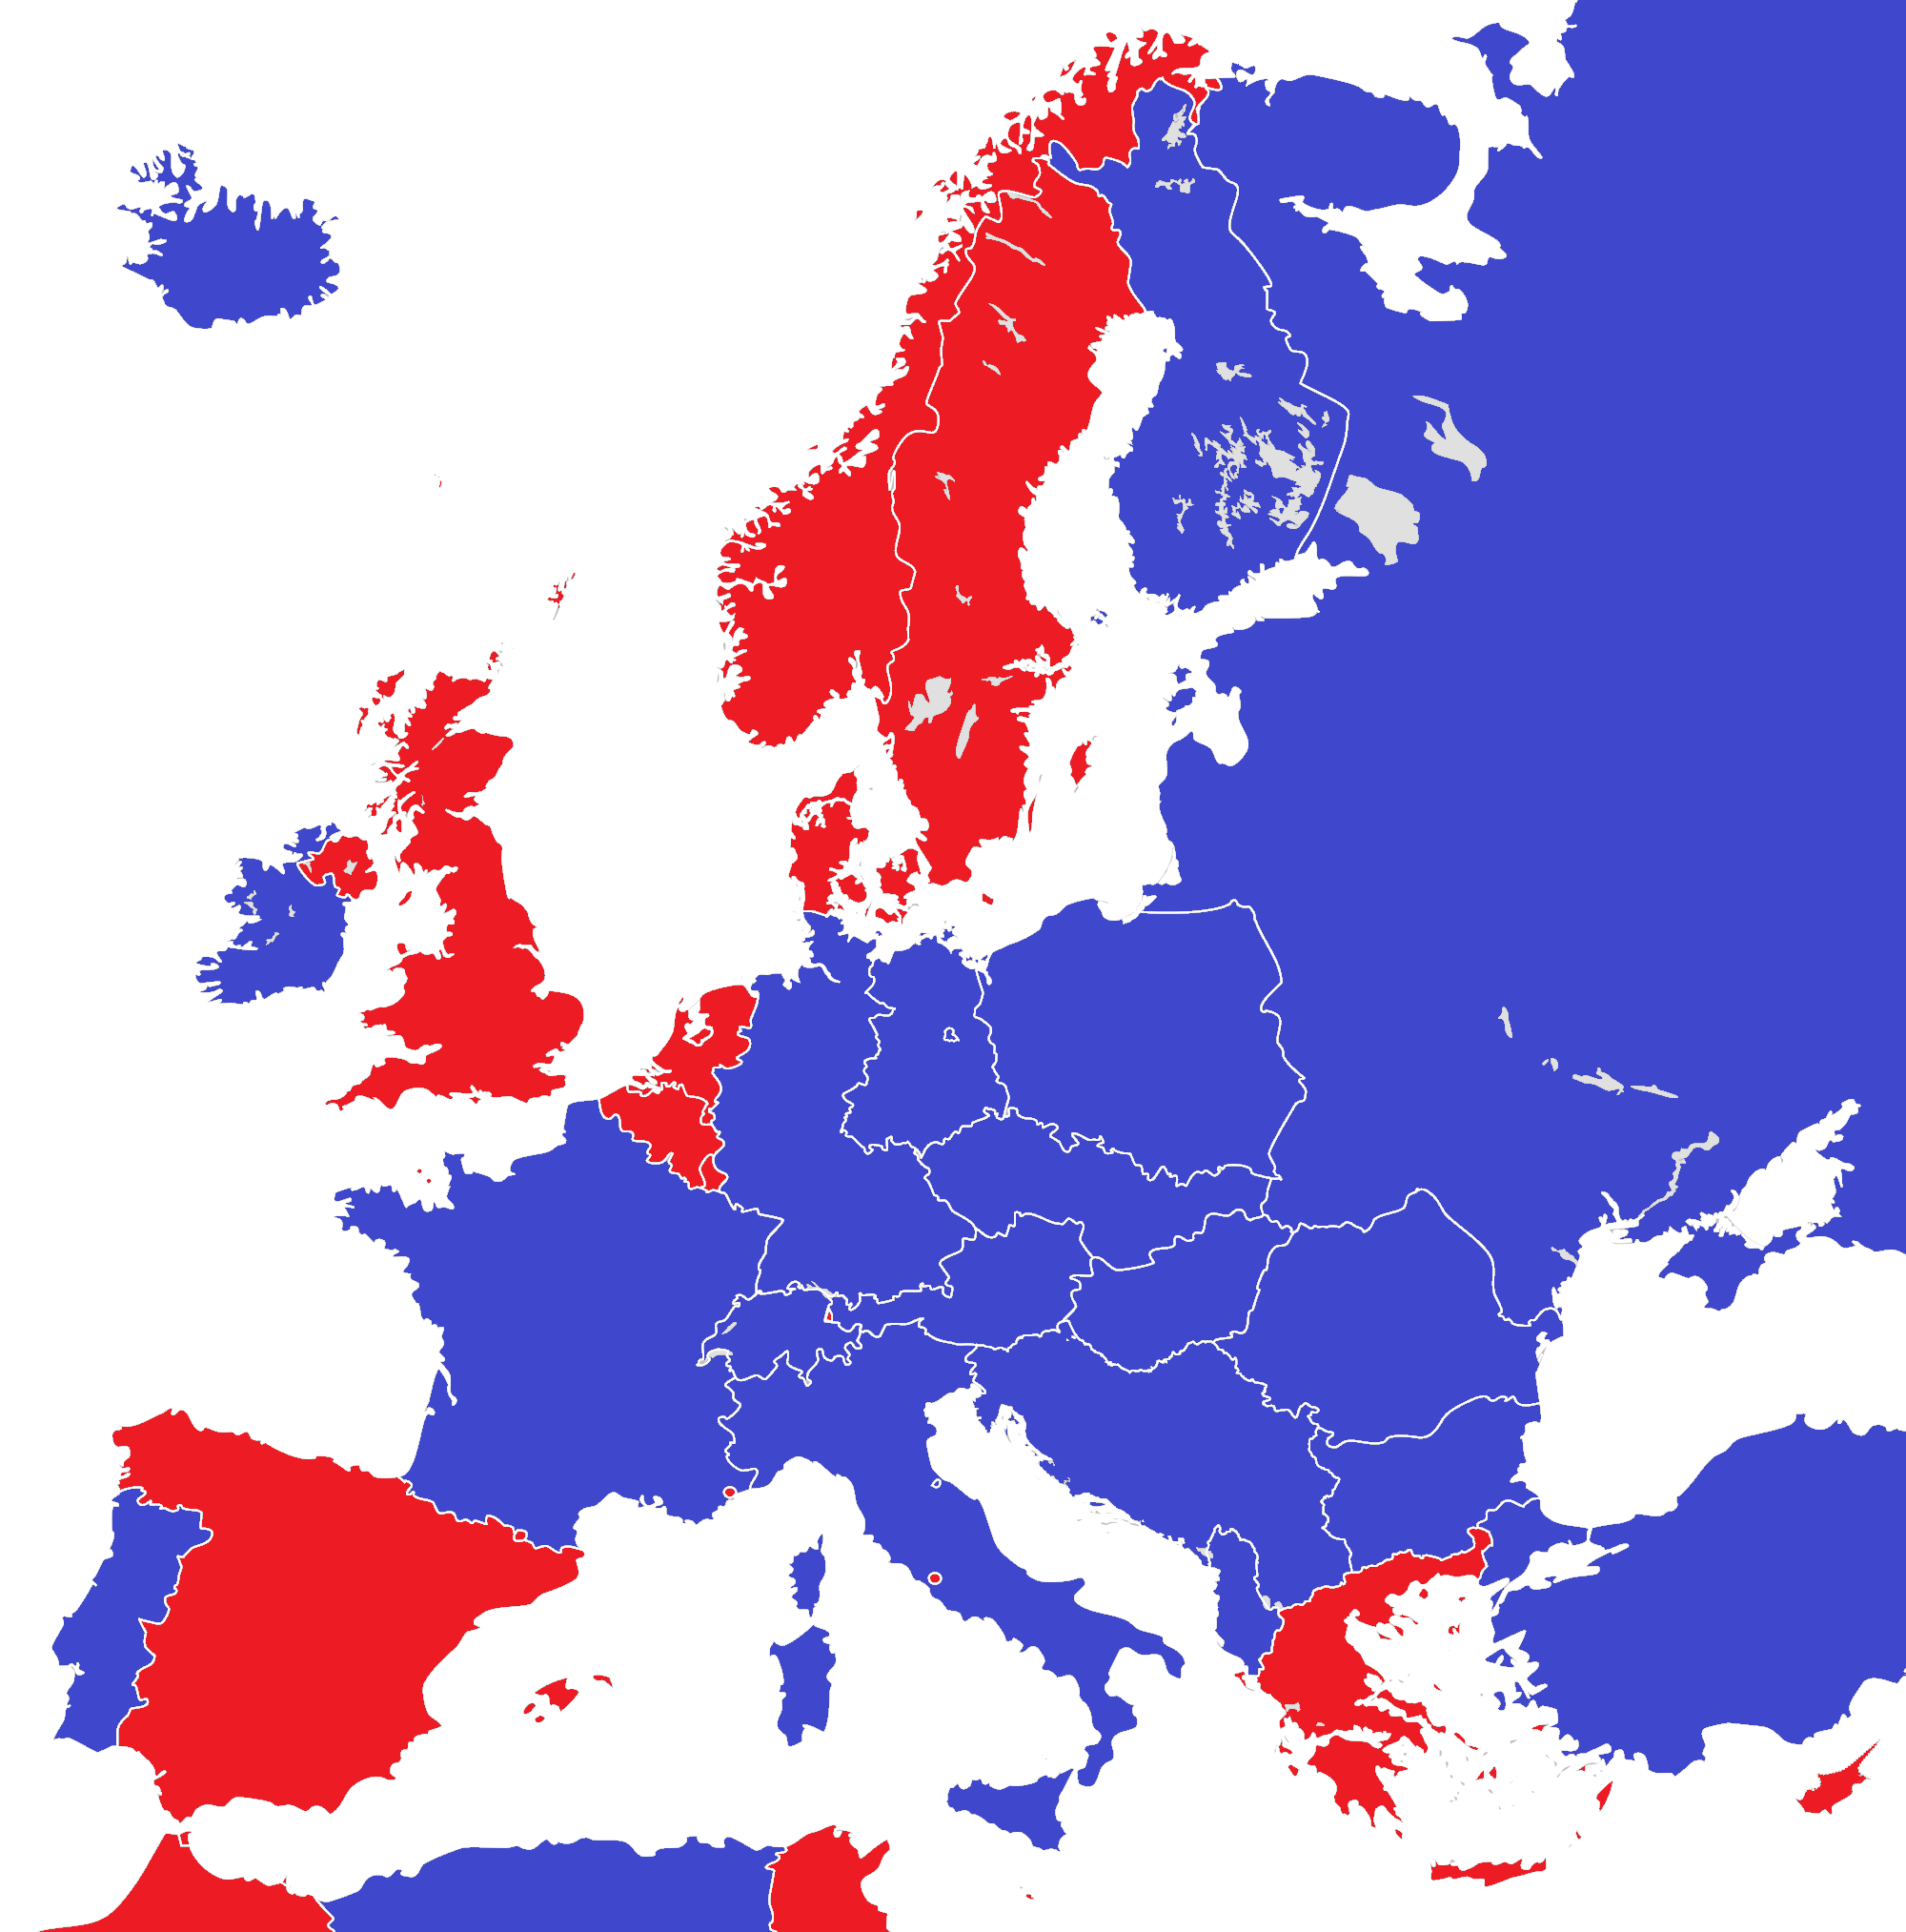 File:Europe 1950 monarchies versus republics.png   Wikimedia Commons